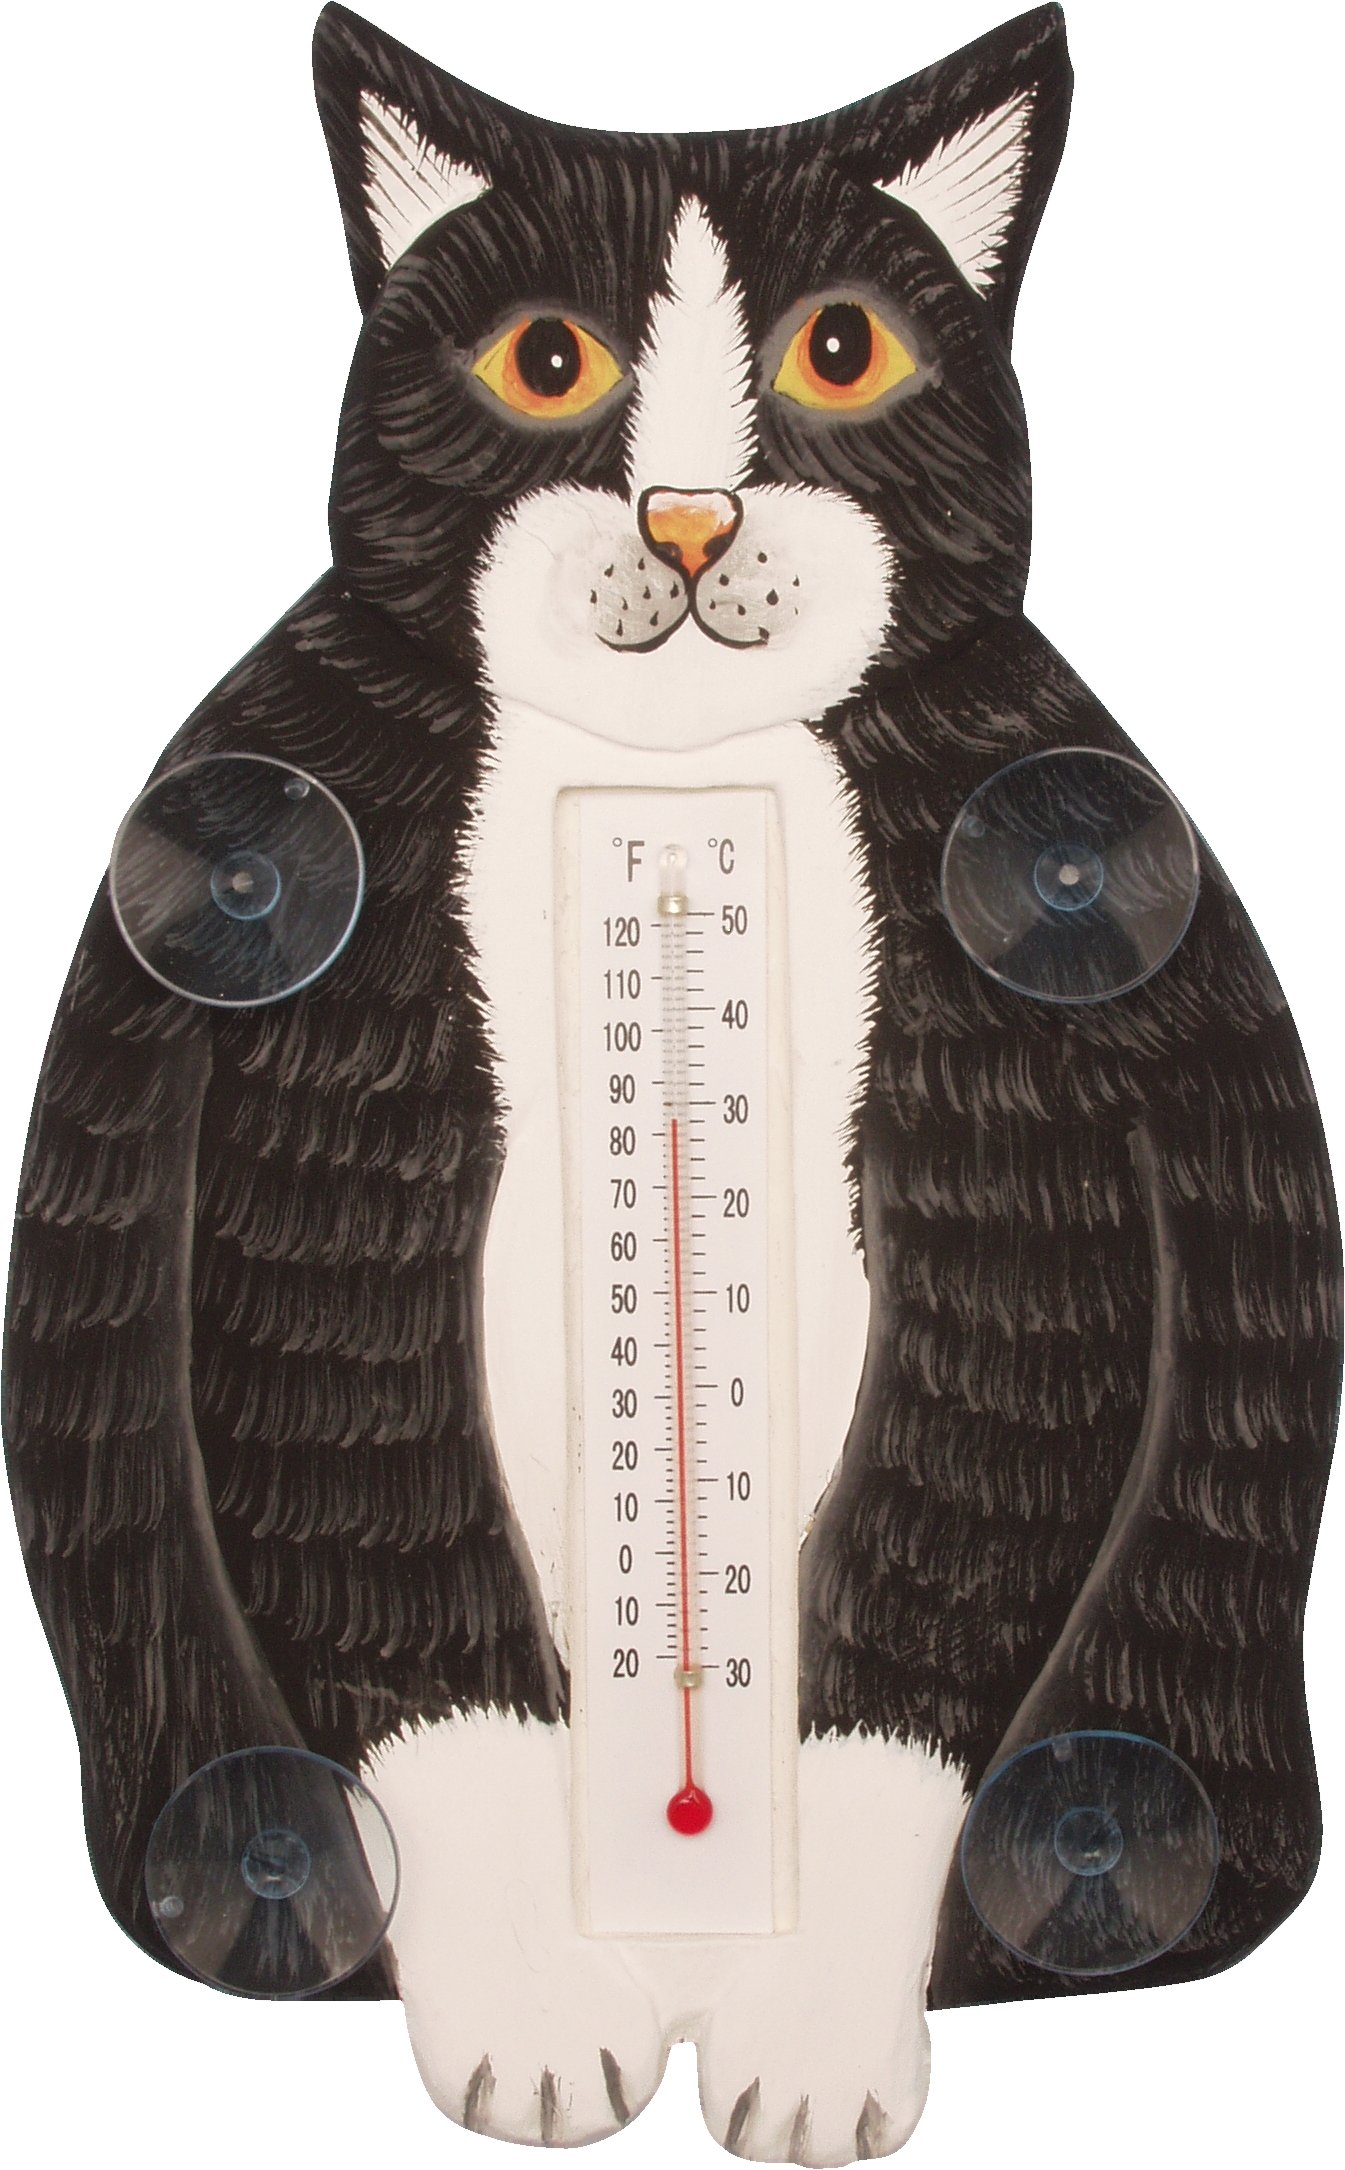 Songbird Essentials SE2170911 Fat Black & White Cat Small Window Thermometer (Set of 1)